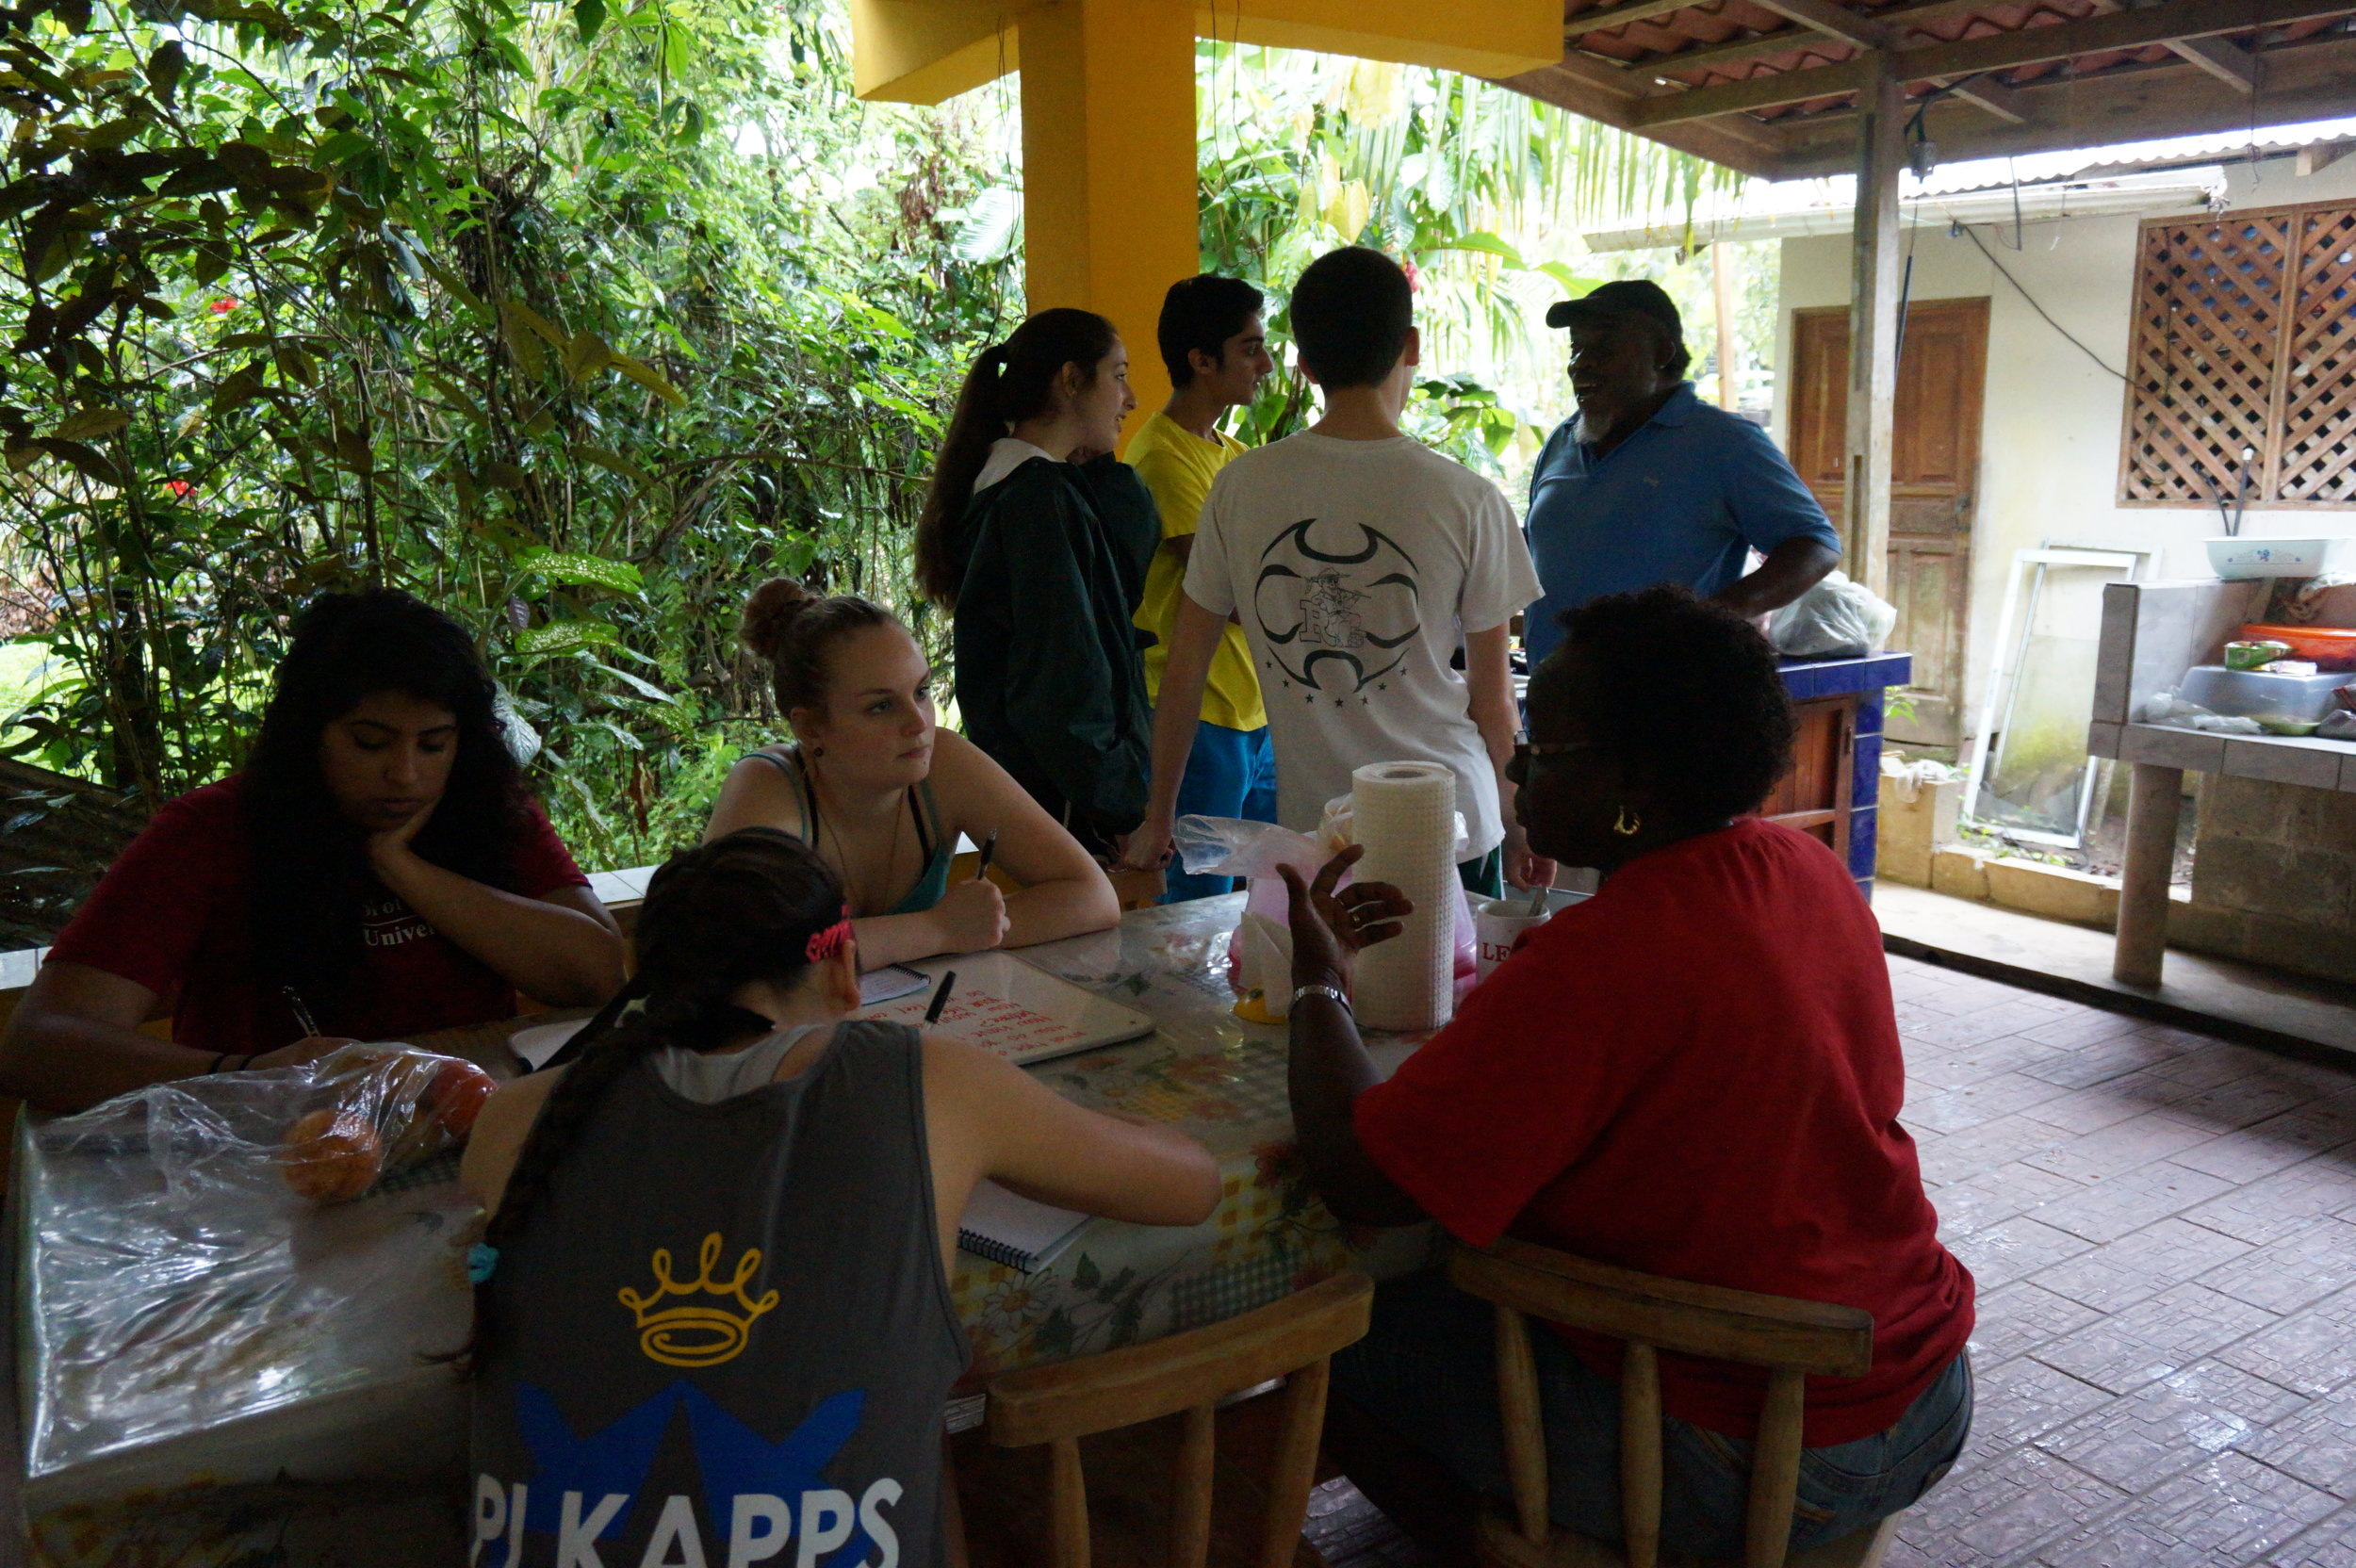 Students from Indiana University's Kelley School of Business interview Manzanillo residents Ethlyn Weir and Dennis Clark as part of the Alternative Spring Break collaboration with Kelley Initiatives for Social Impact.